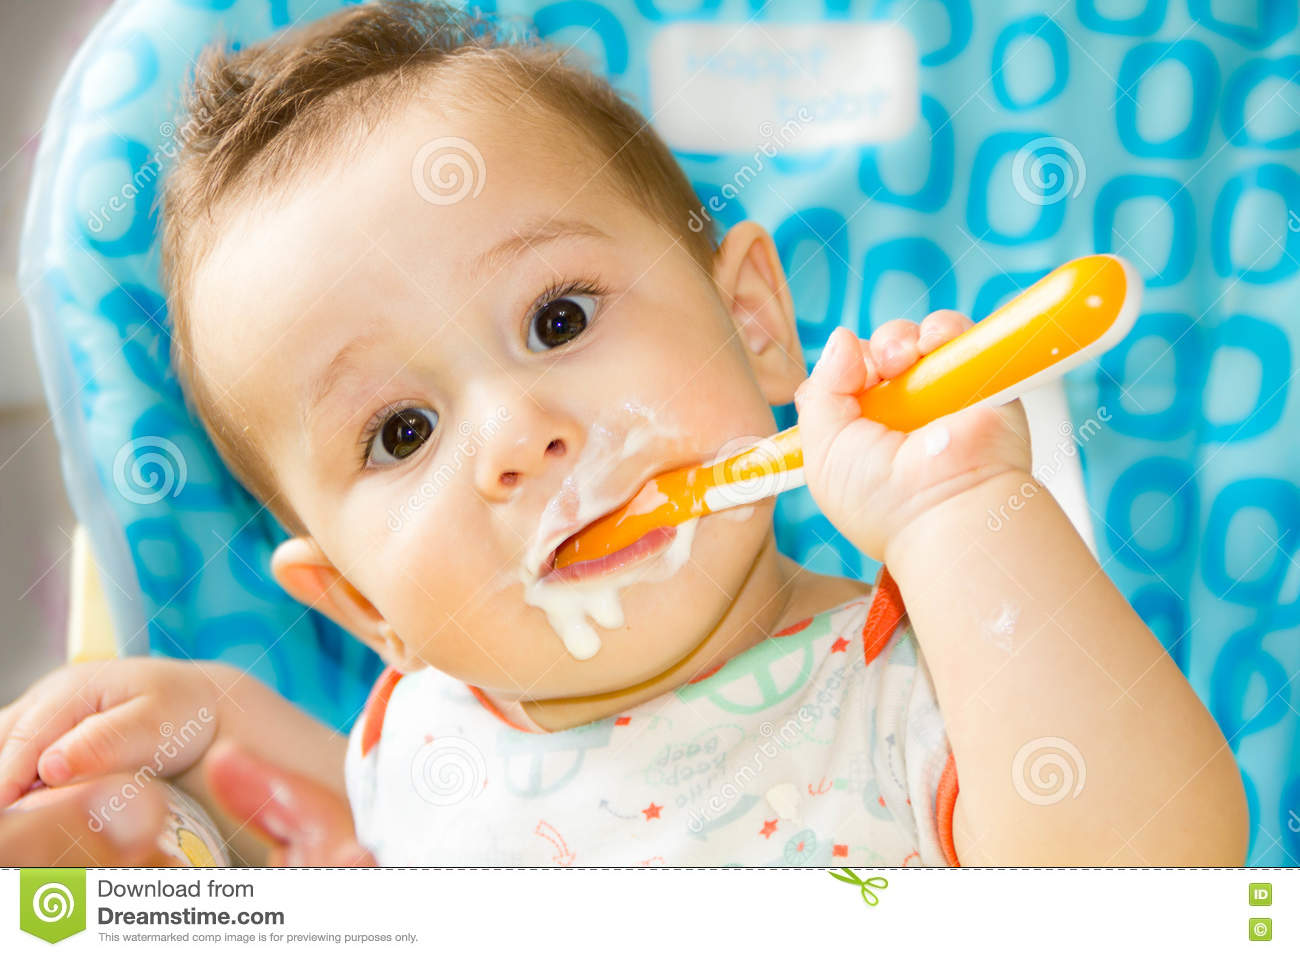 Baby Food Chair Small Happy Child Sitting In A Chair And Eats Yogurt From